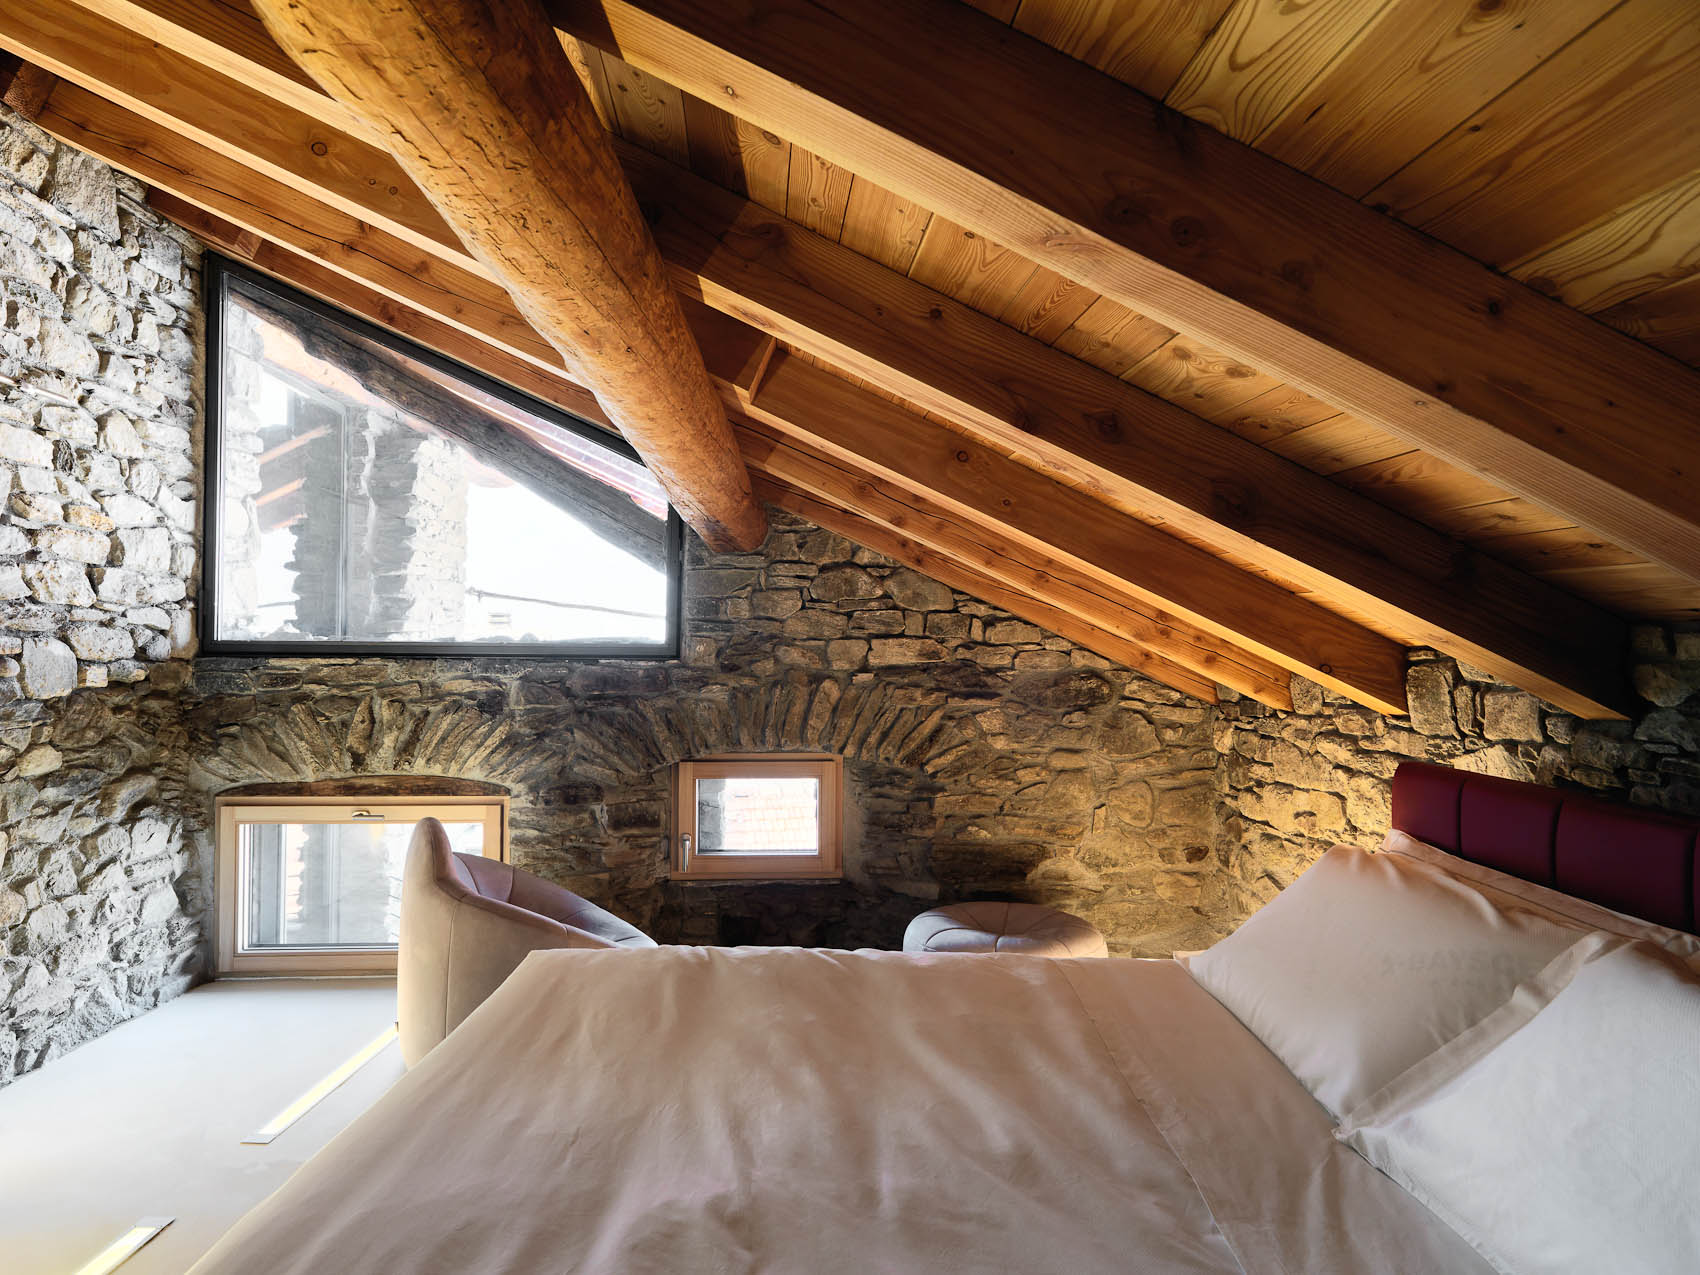 Bed breakfast in country house charm and design aosta valley for Idee di design di chalet